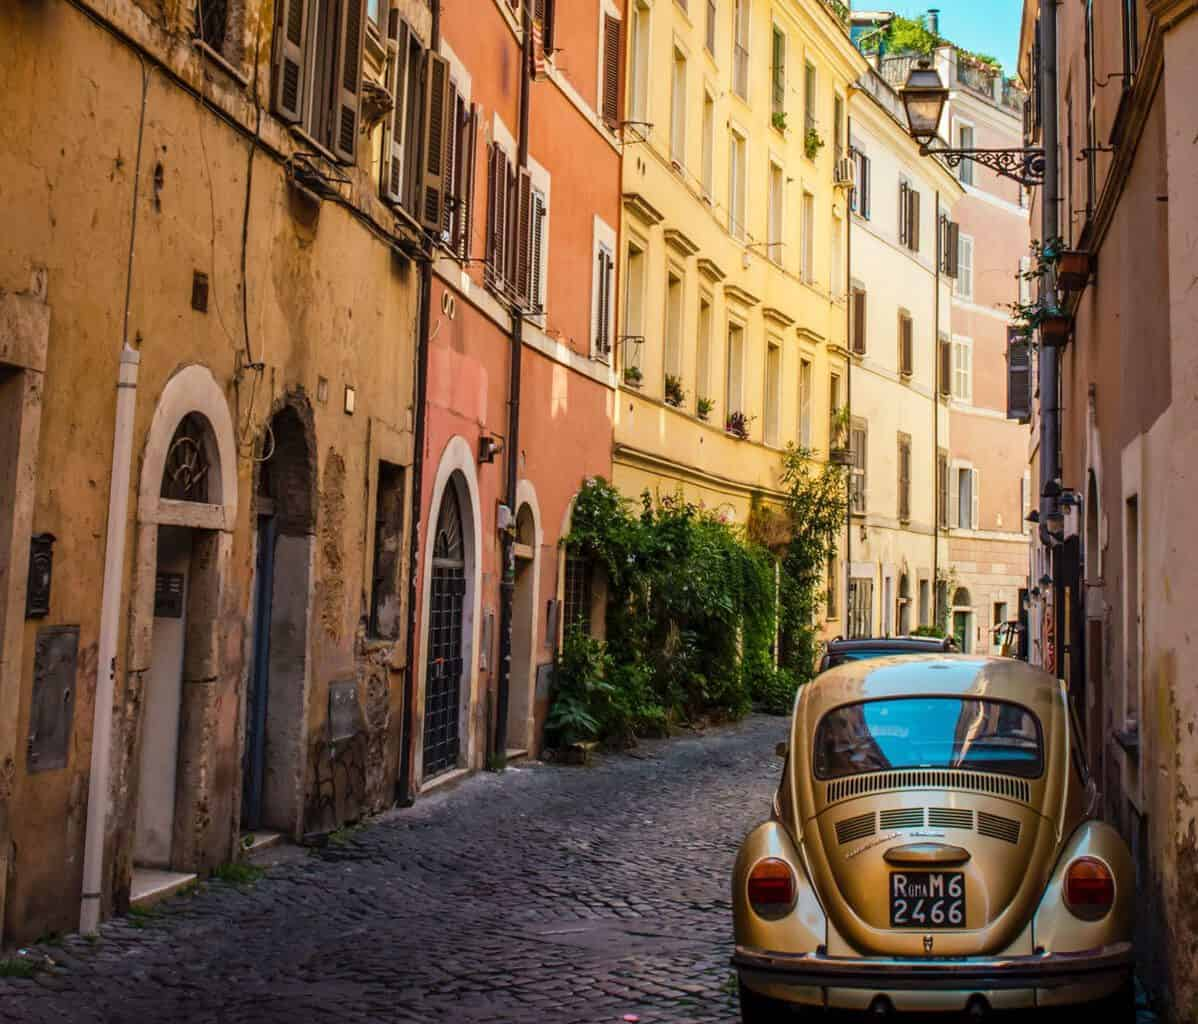 A VW car parked in colourful street in Trastevere neighbourhood.